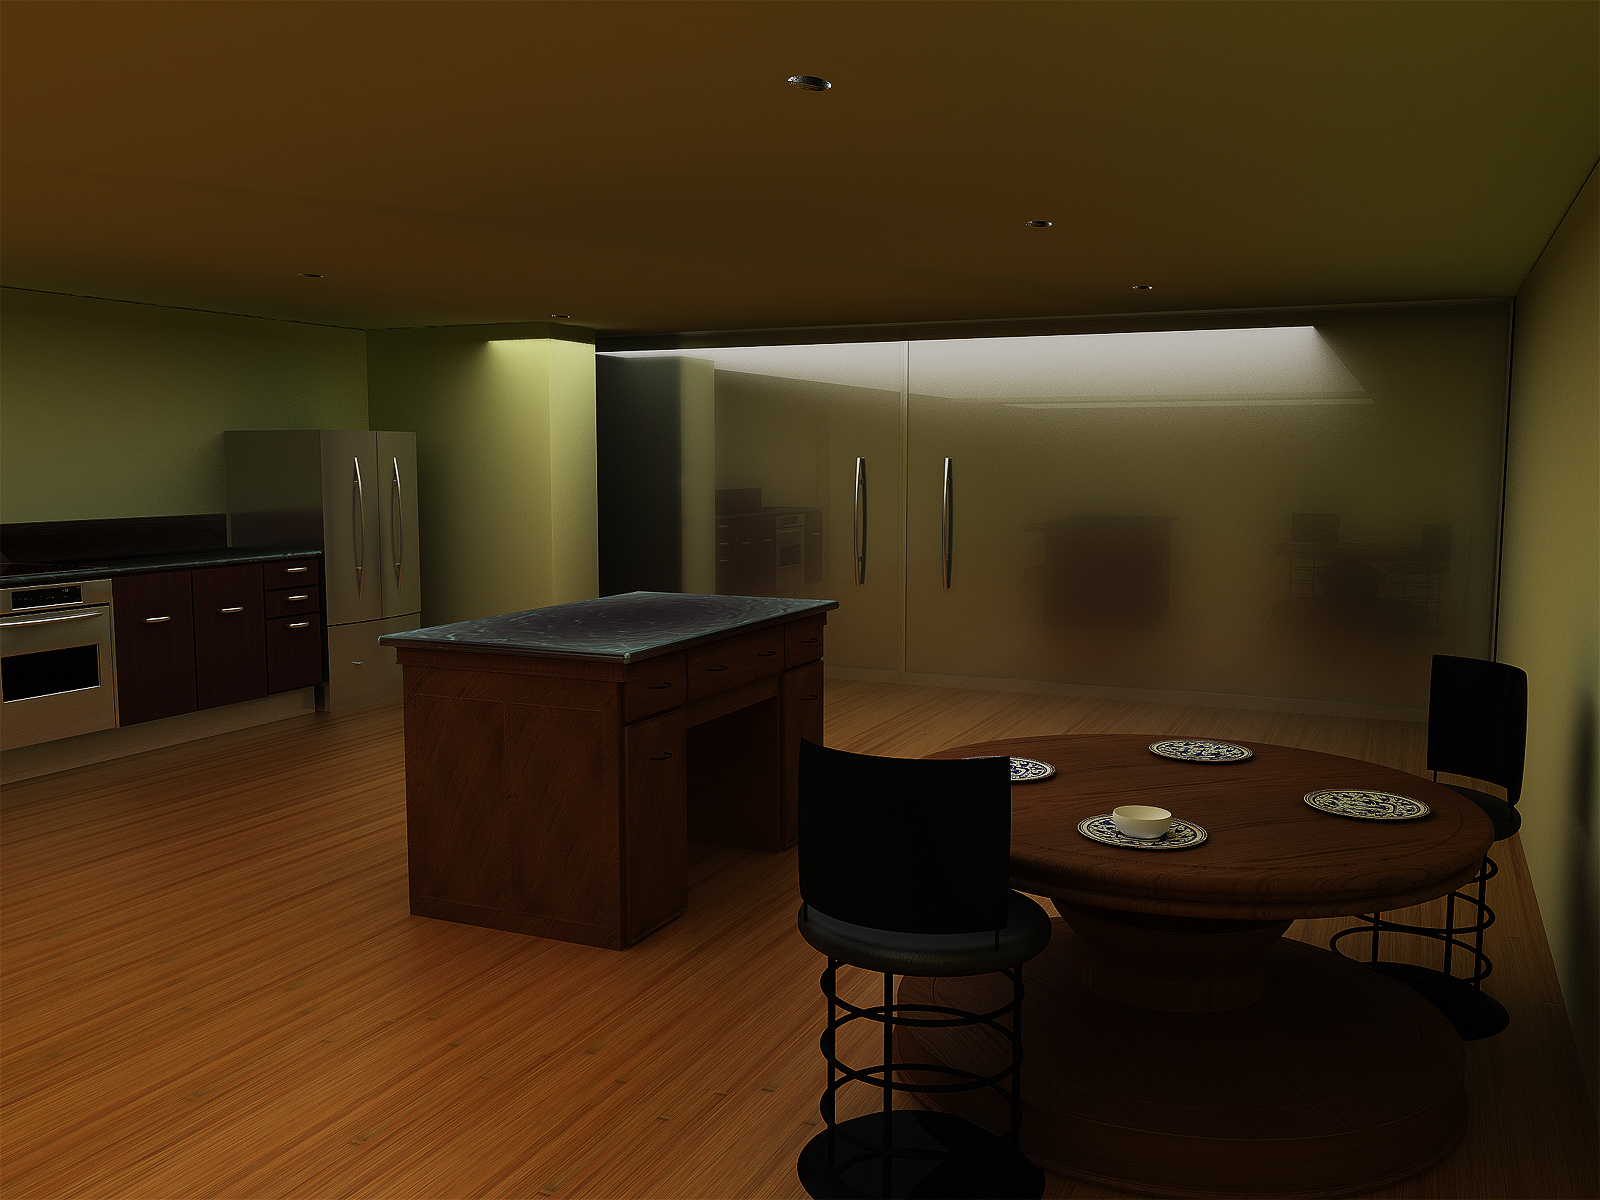 Kitchen and Dining Room V1